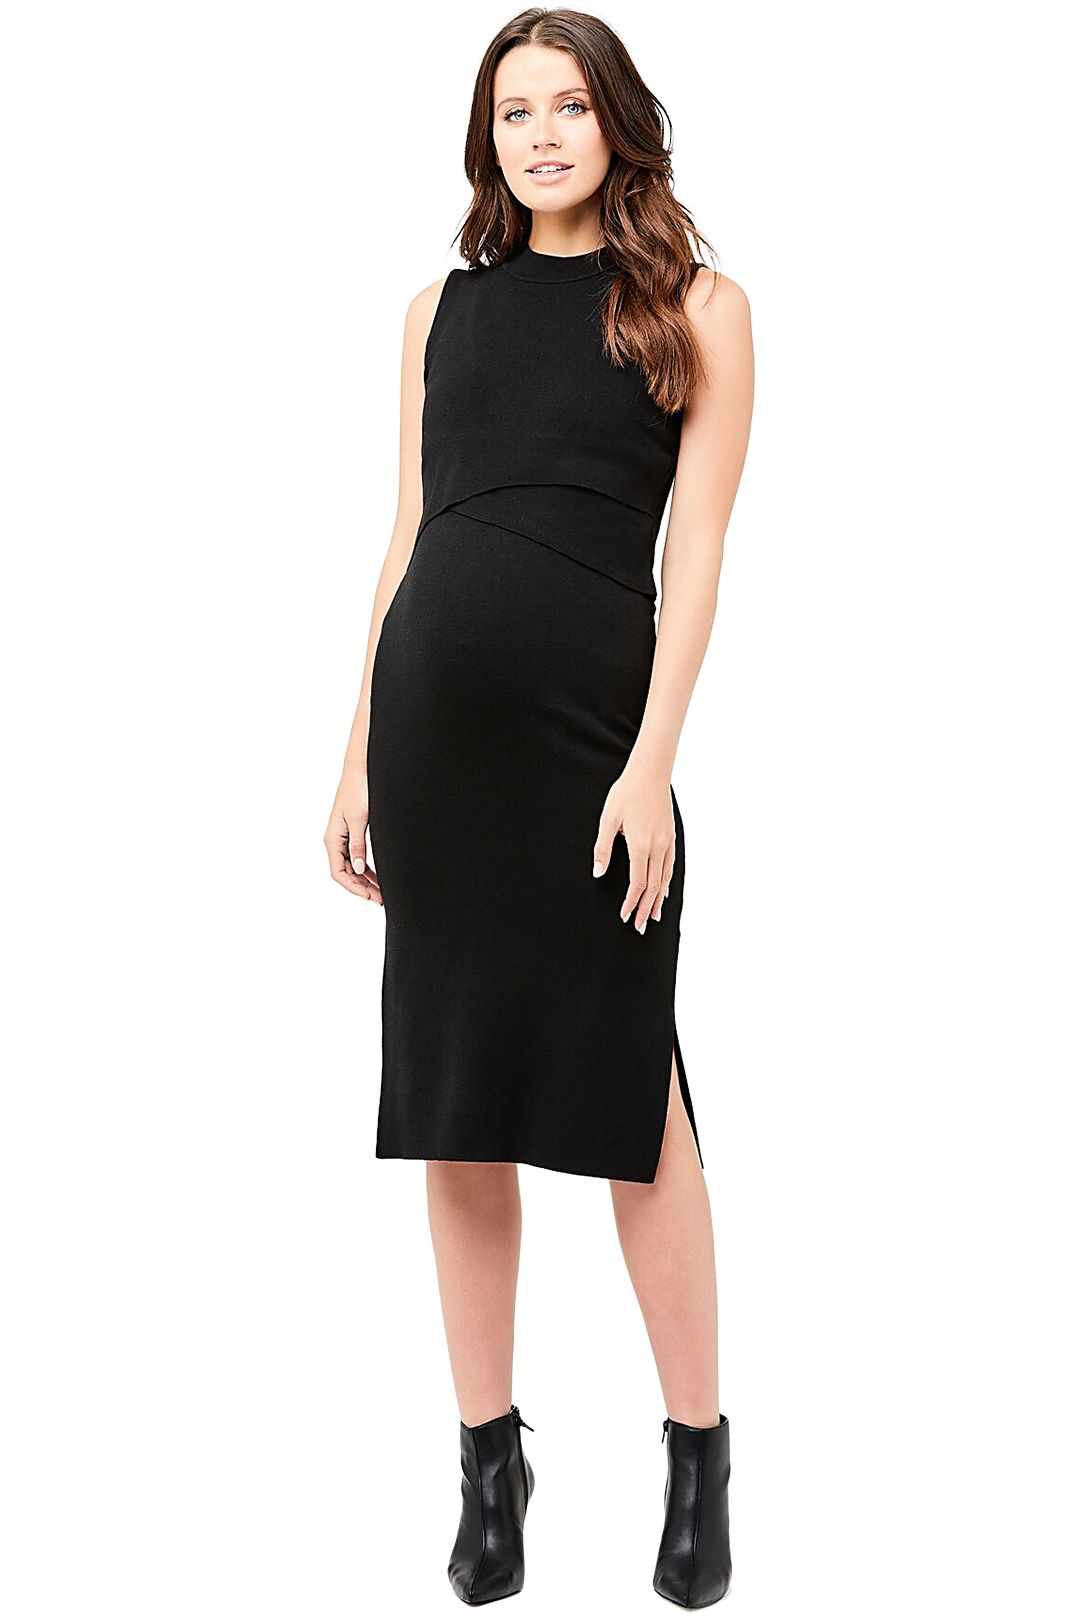 Ripe-Maternity-Knit-Nursing-Dress-Black-Front